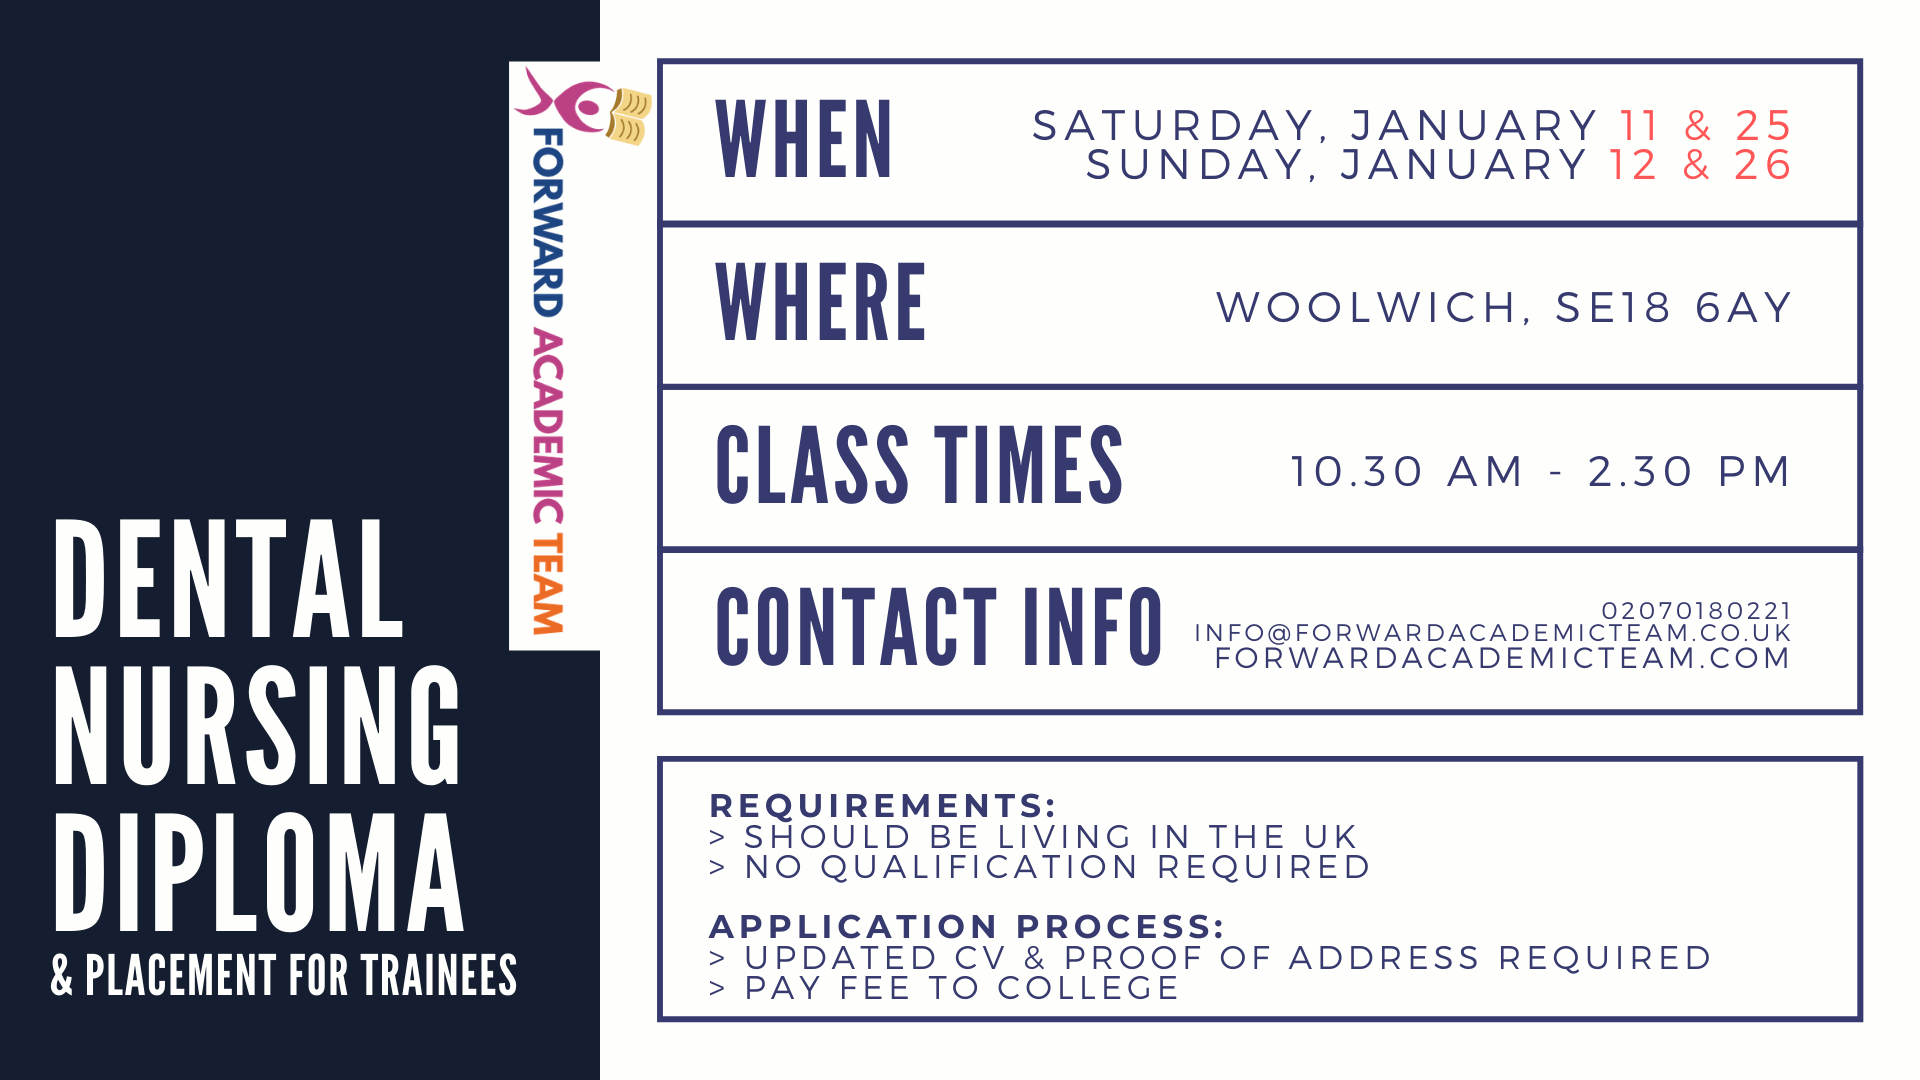 woolwich classes